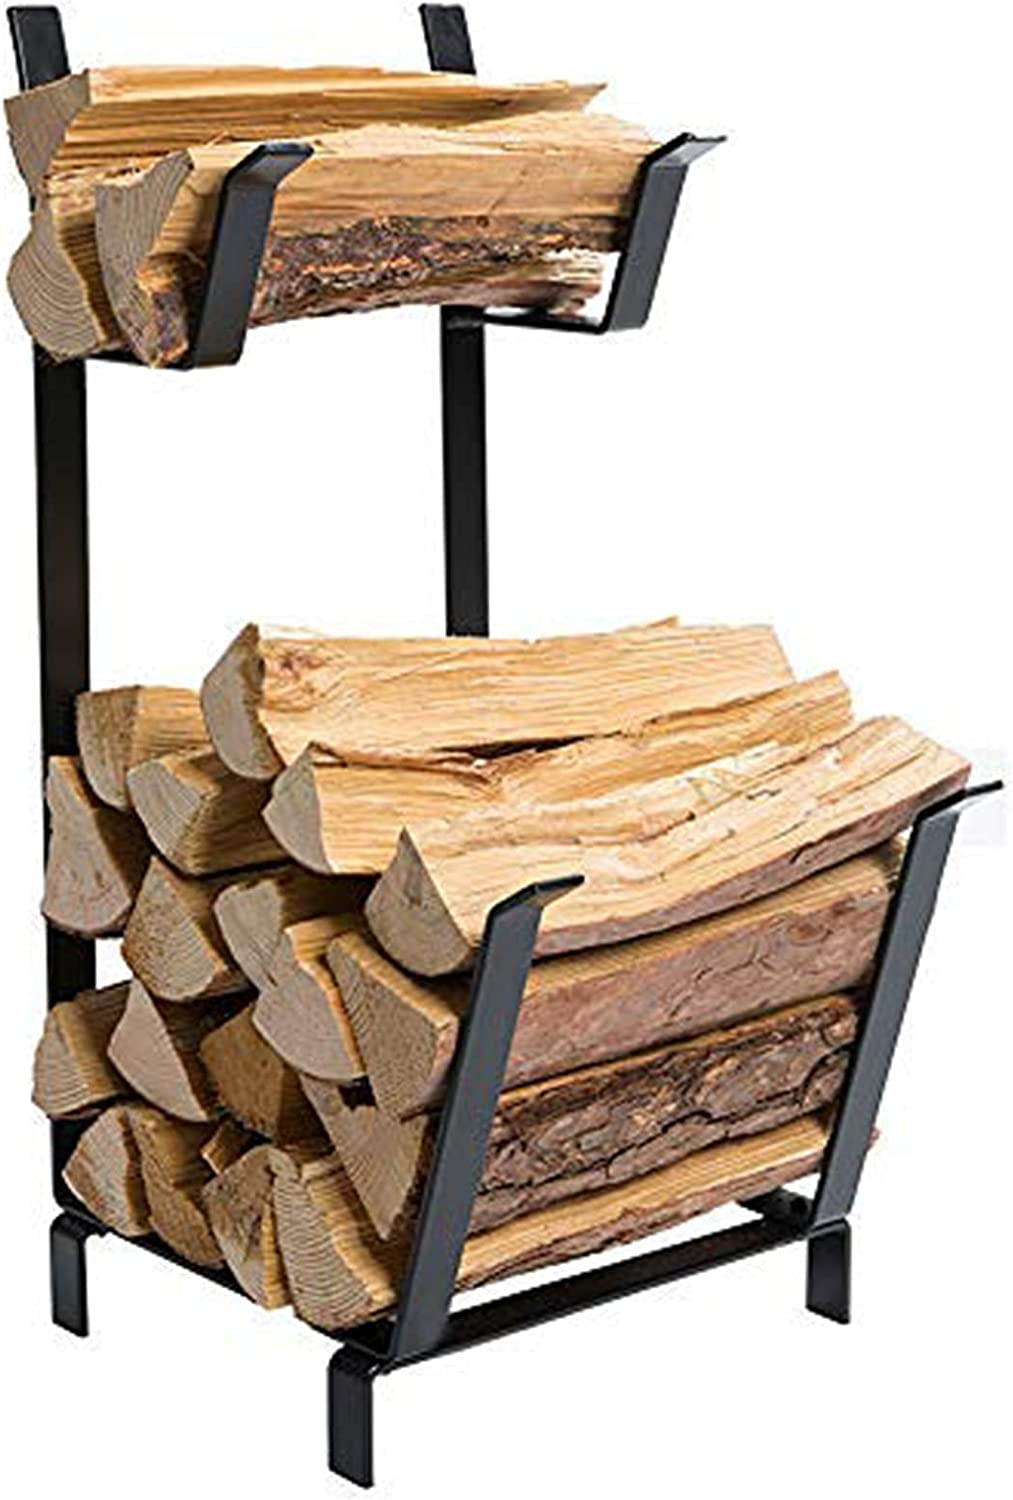 DOEWORKS 27 Fresno Mall Inches Two Tier Outdoor Practical Outlet ☆ Free Shipping Lo Indoor Firewood